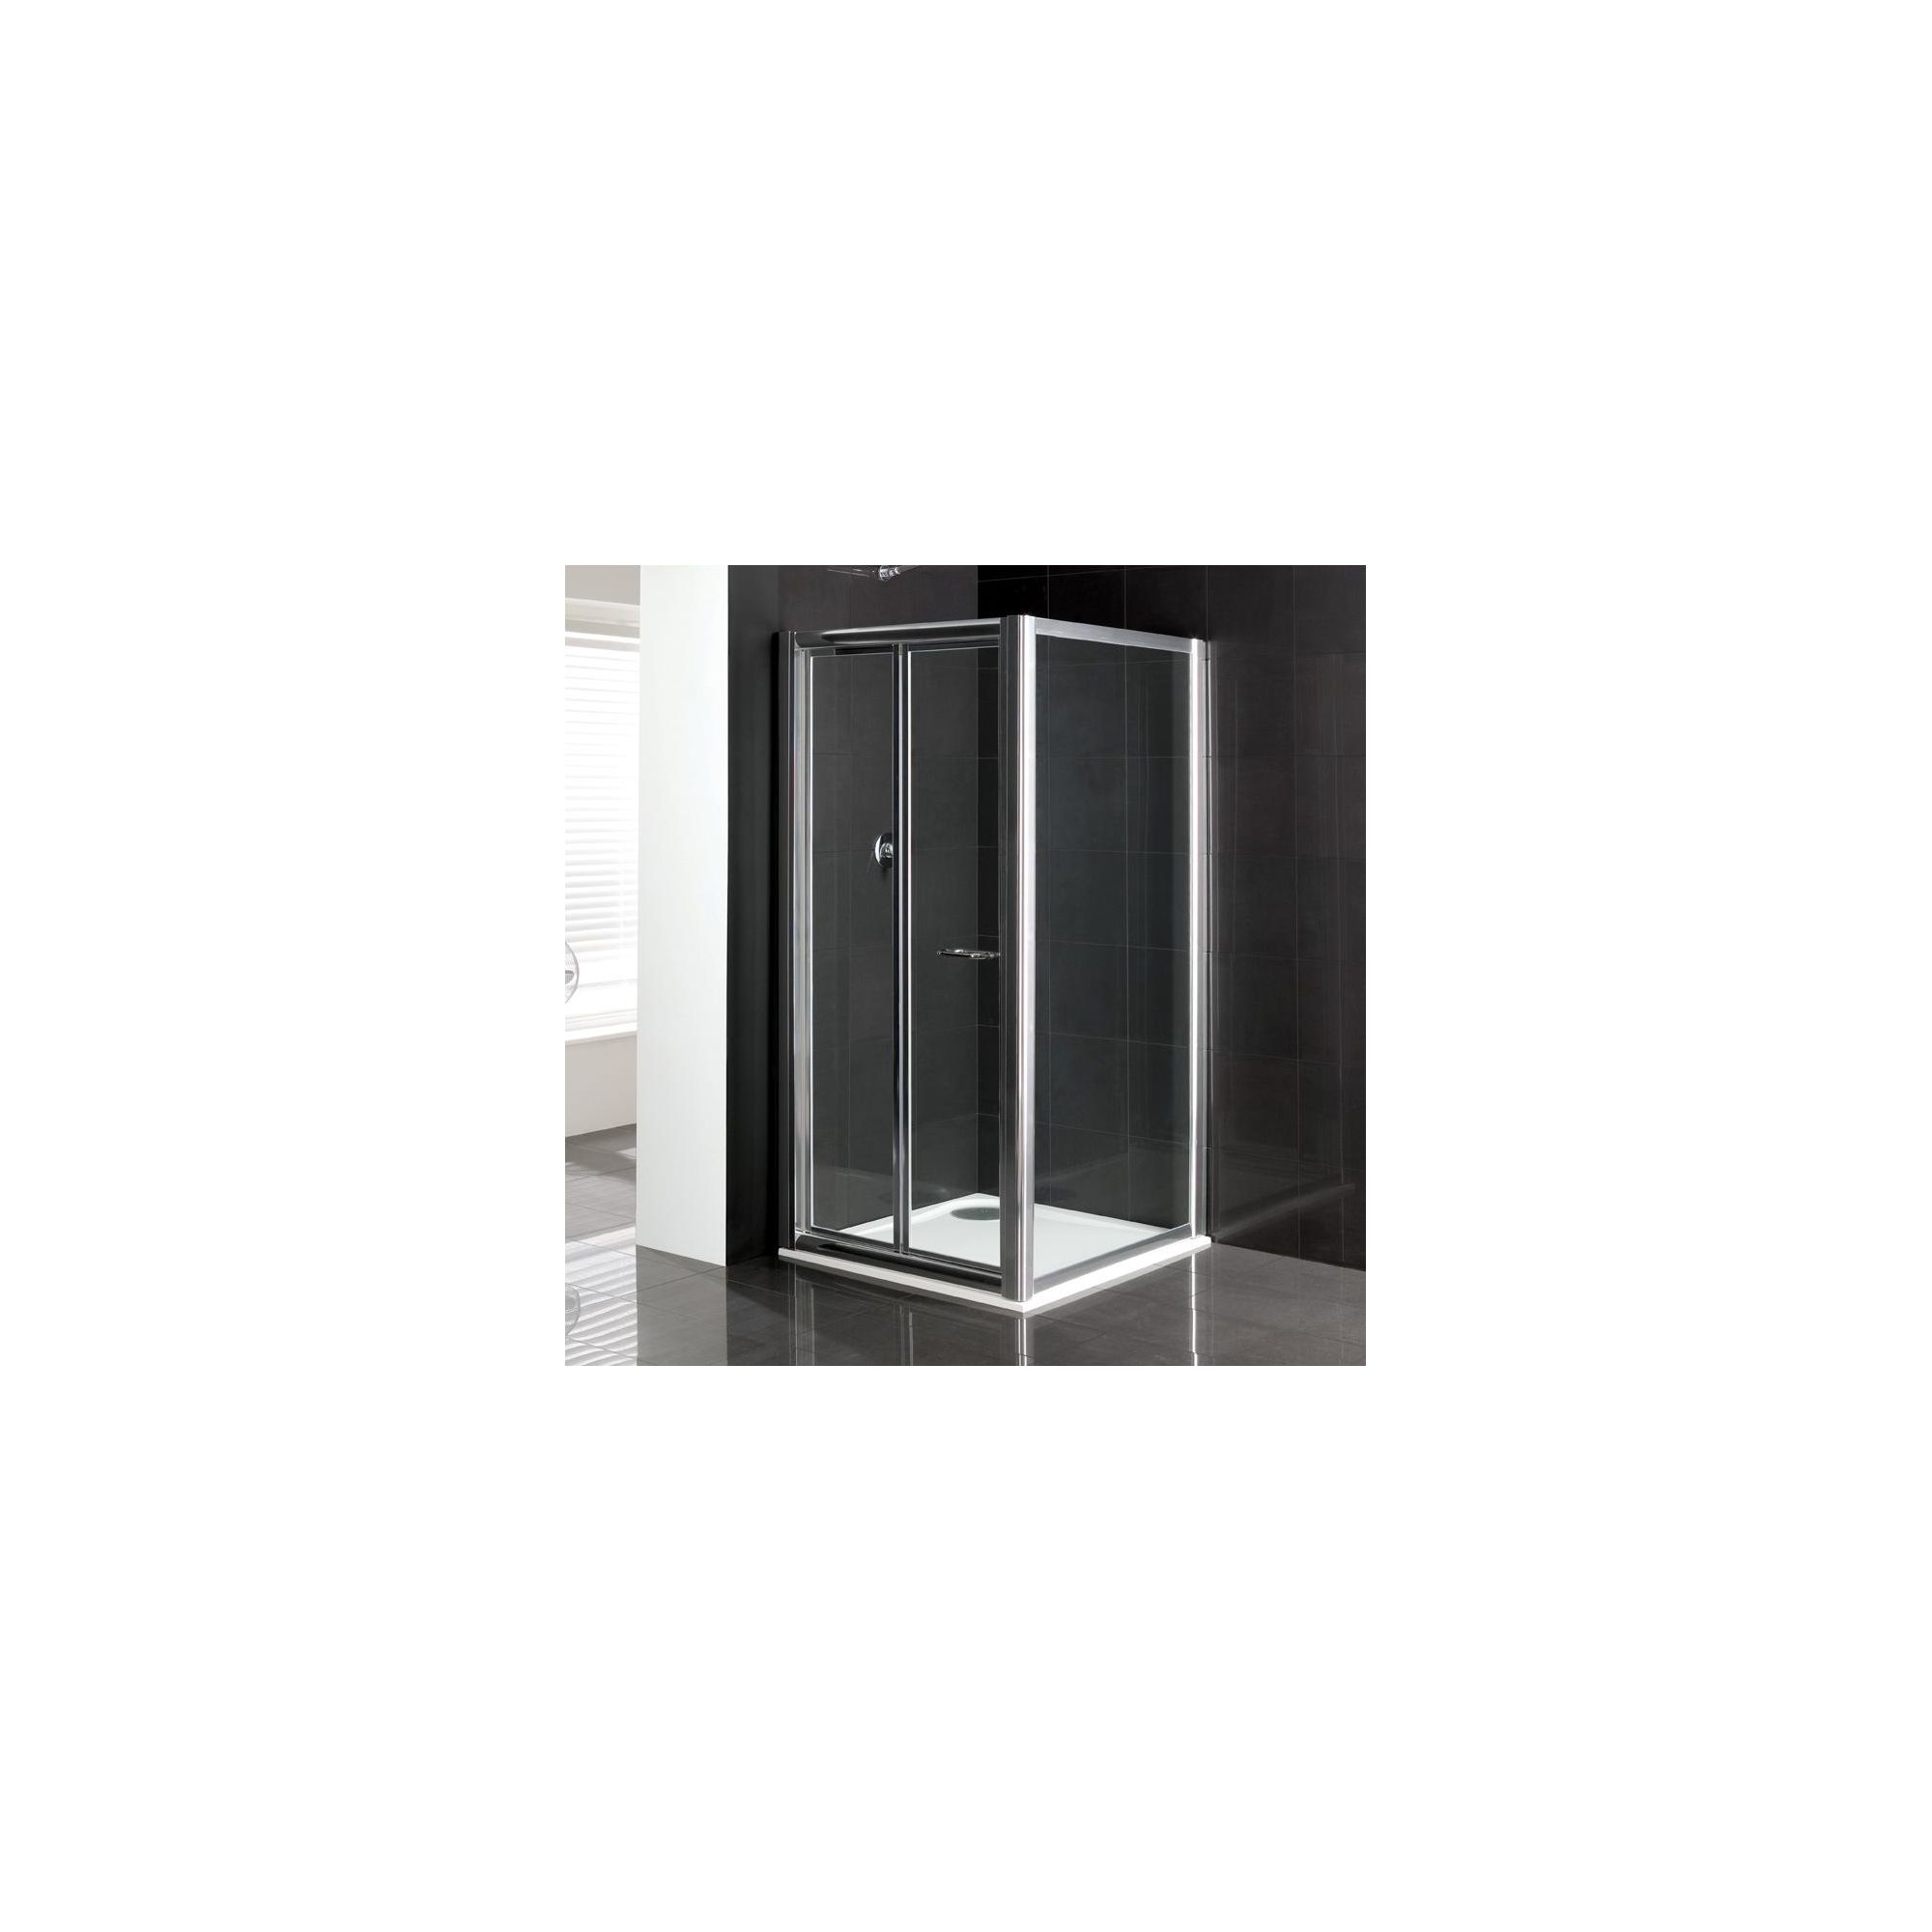 Duchy Elite Silver Bi-Fold Door Shower Enclosure, 1000mm x 700mm, Standard Tray, 6mm Glass at Tesco Direct